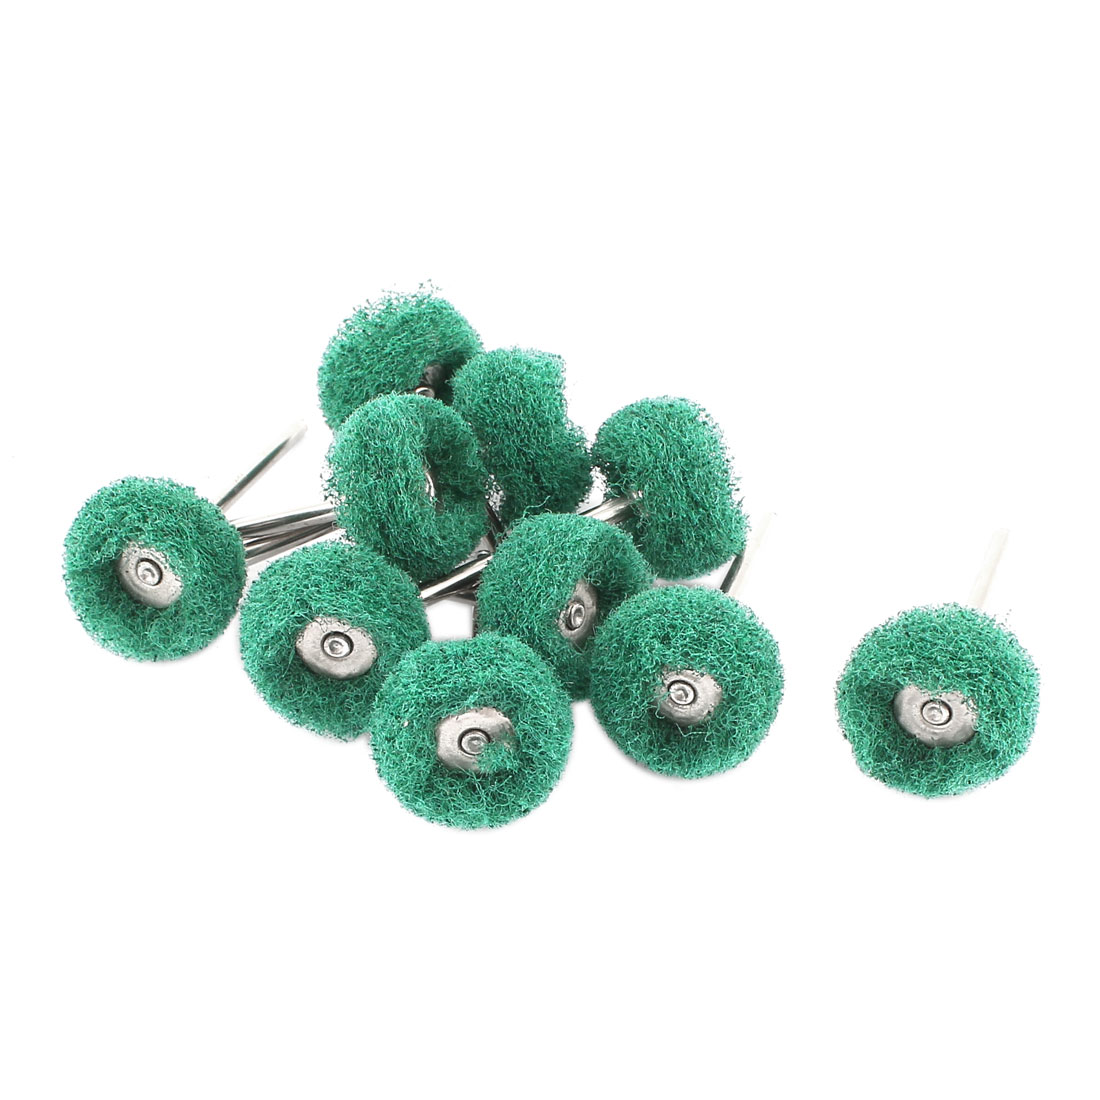 3mm Shank 22mm Dia Wheel Green Nylon Polishing Brush Rotary Tools 10 Pcs